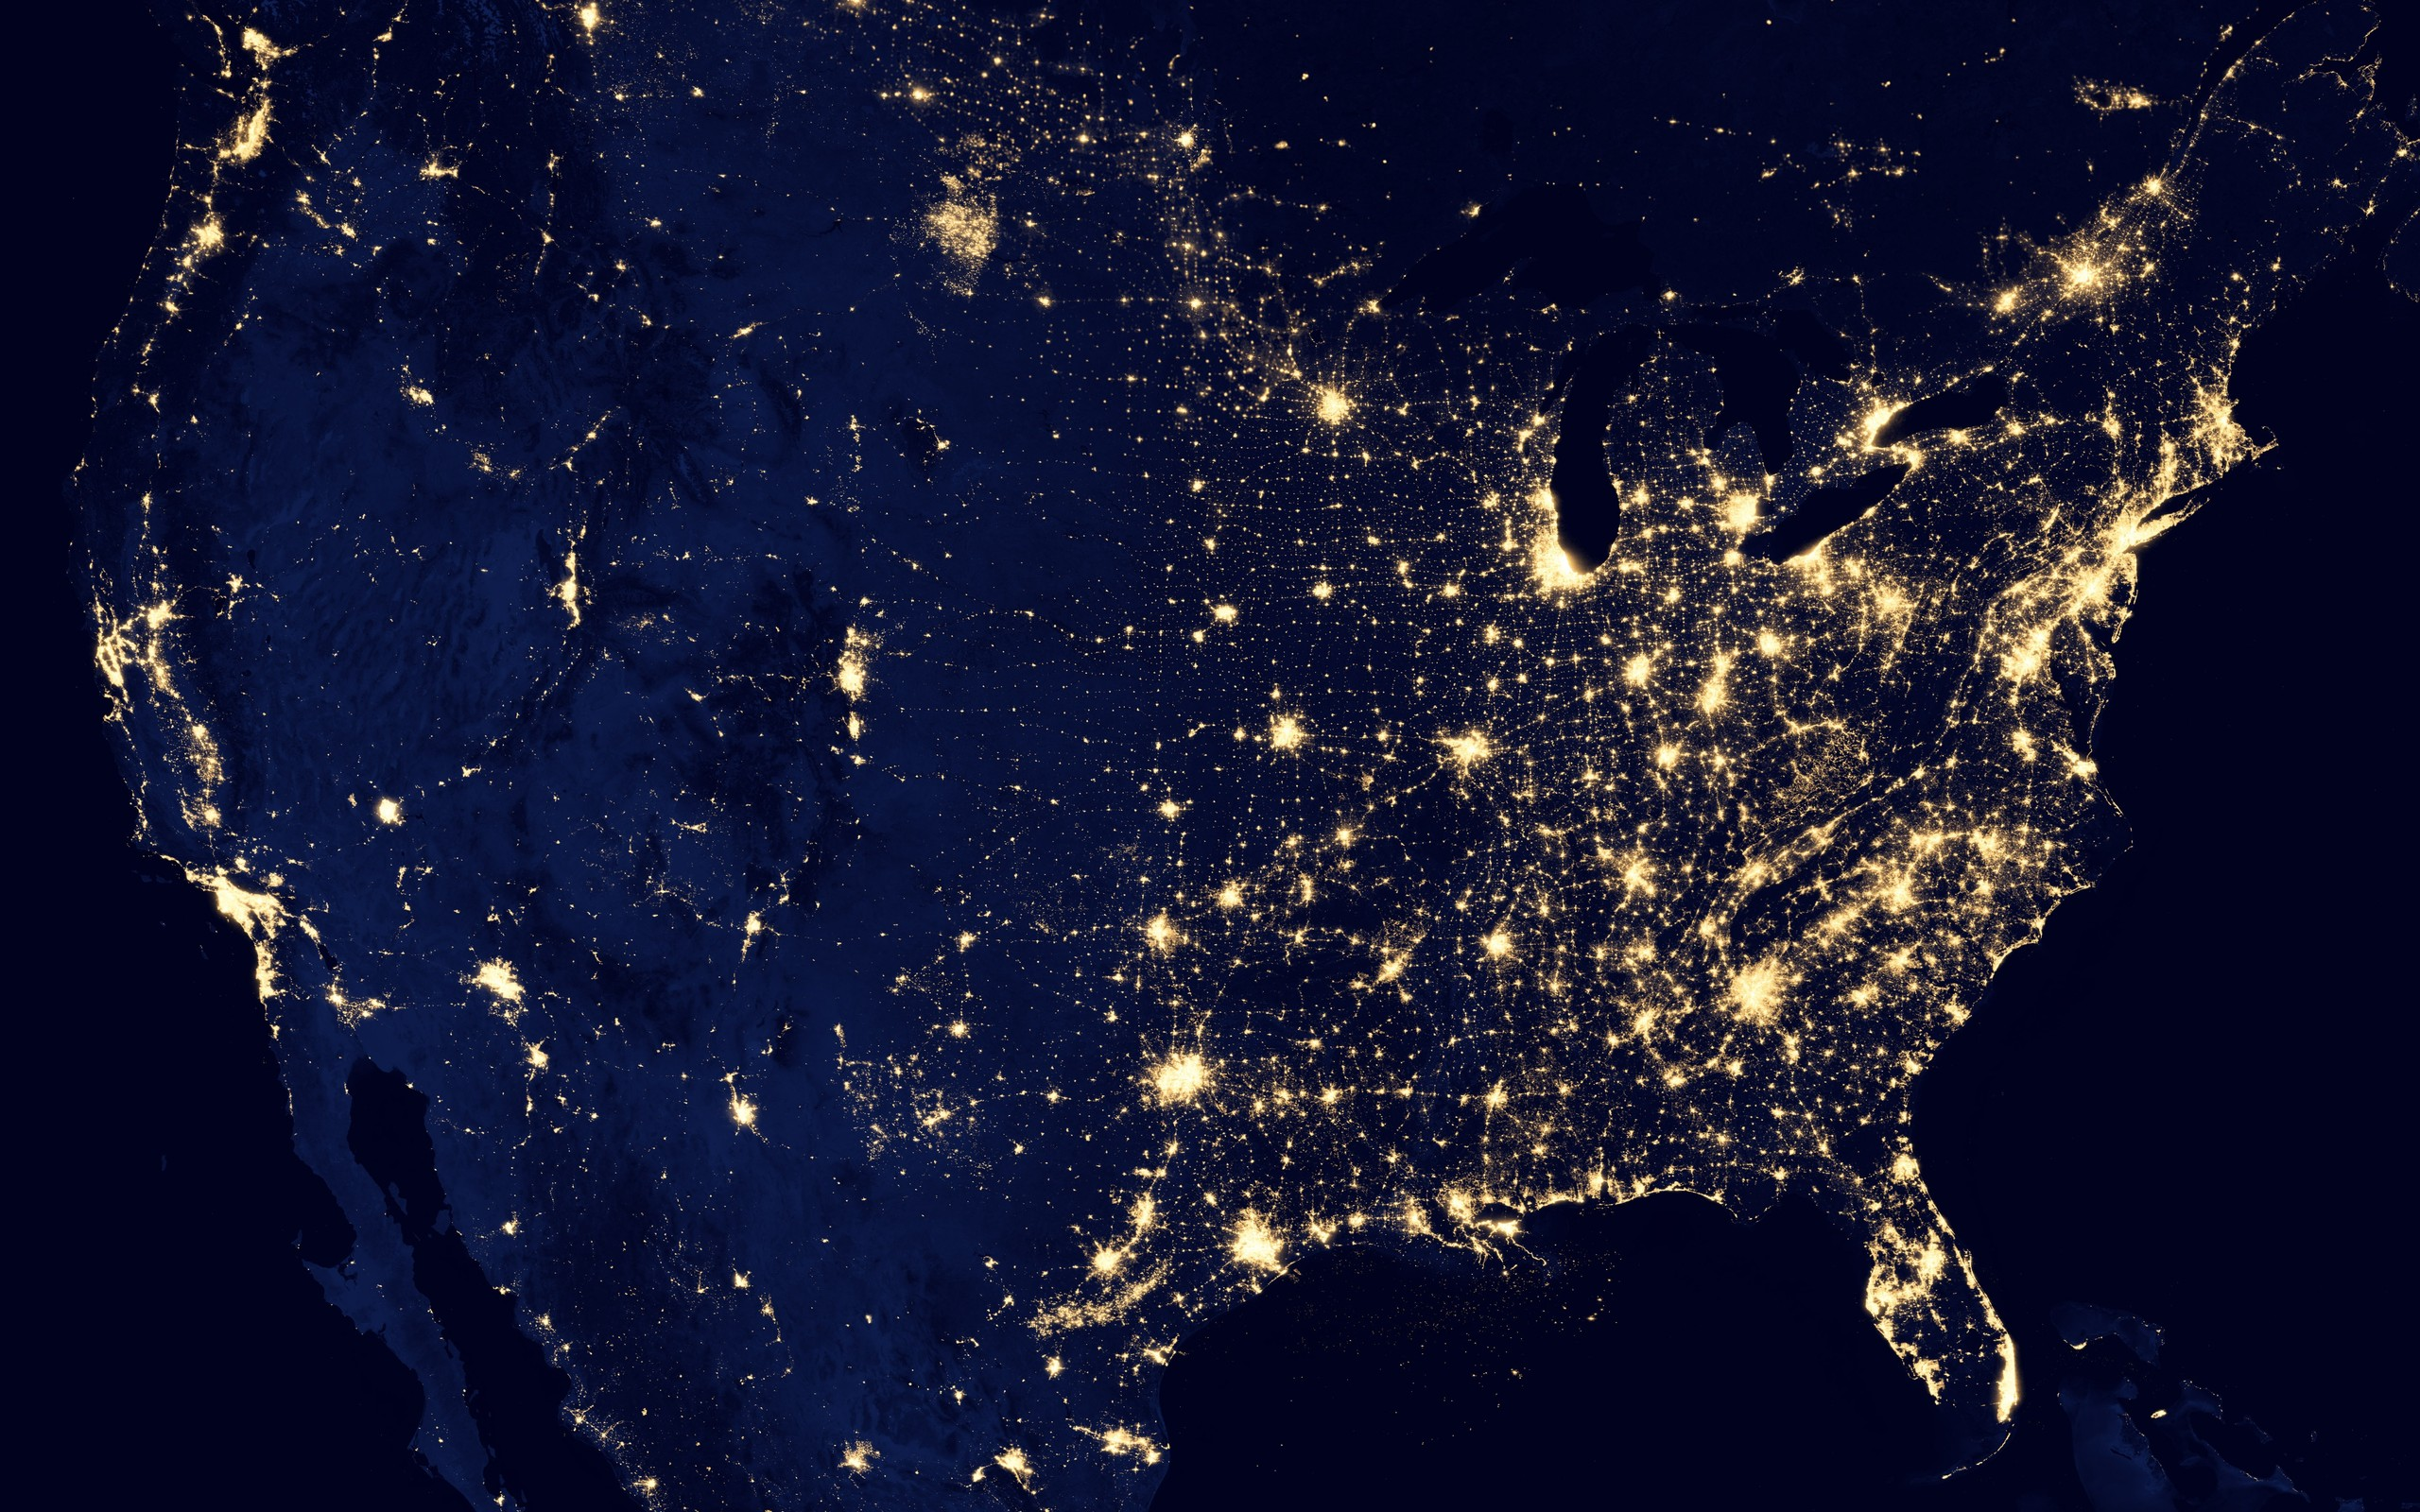 Grid map usa united states power electricity night lights space grid map usa united states power electricity night lights space america cities populations places states earth ocean sea photography nasa planets sci fi gumiabroncs Image collections